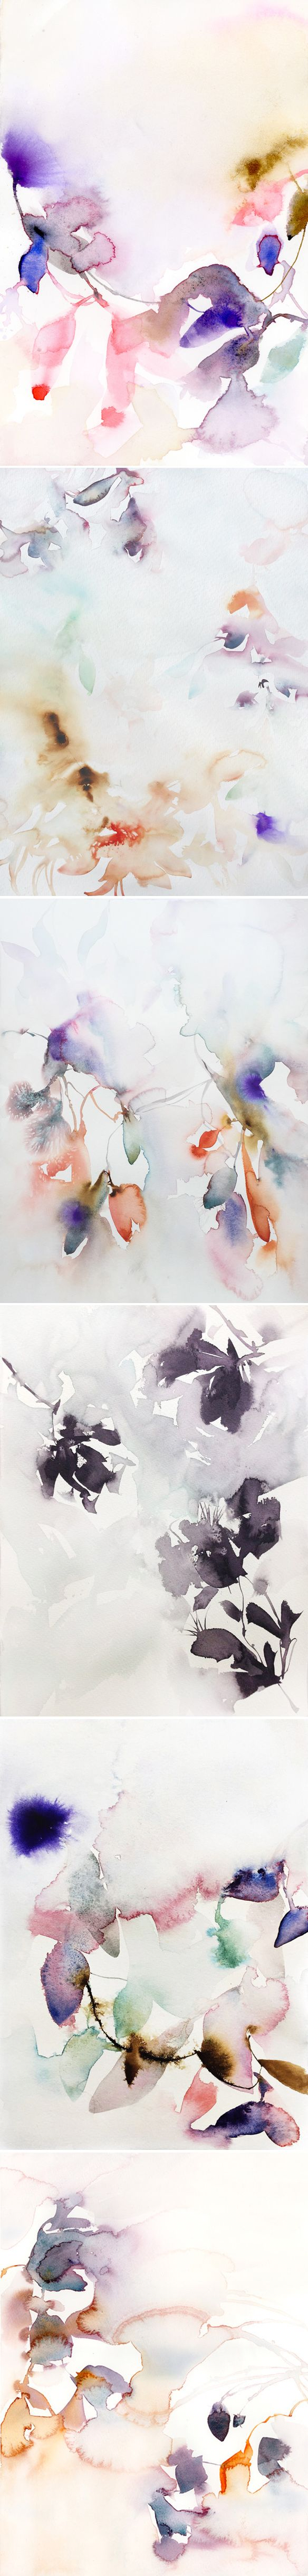 25 beautiful abstract watercolor ideas on pinterest for Art 1576 cc